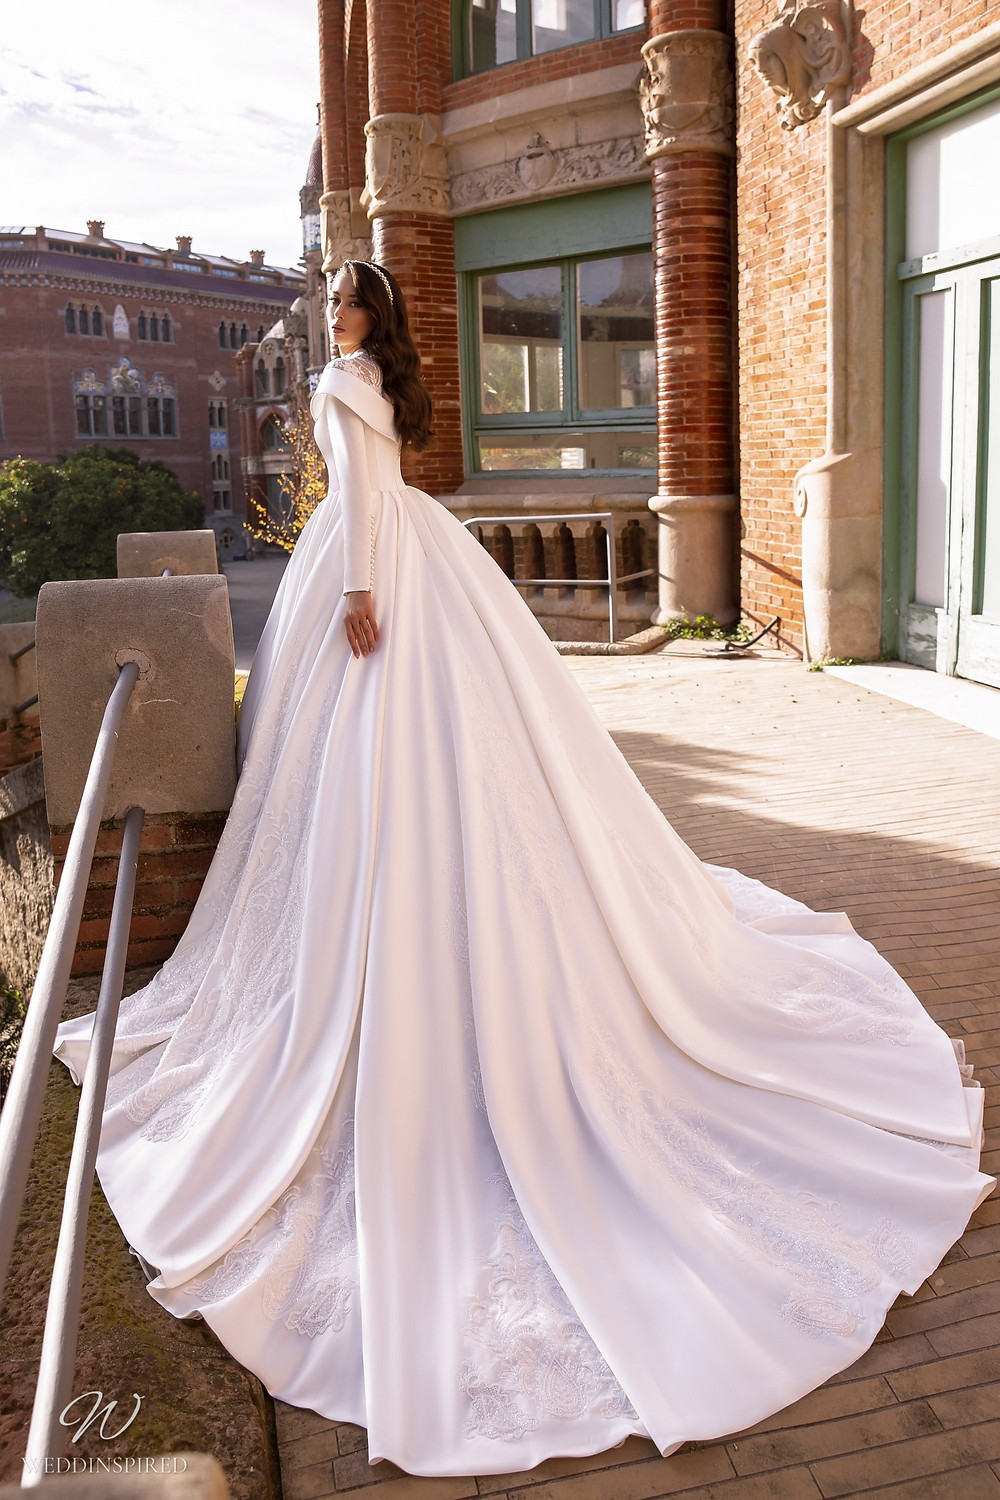 A Maks Mariano off the shoulder princess ball gown wedding dress with long sleeves